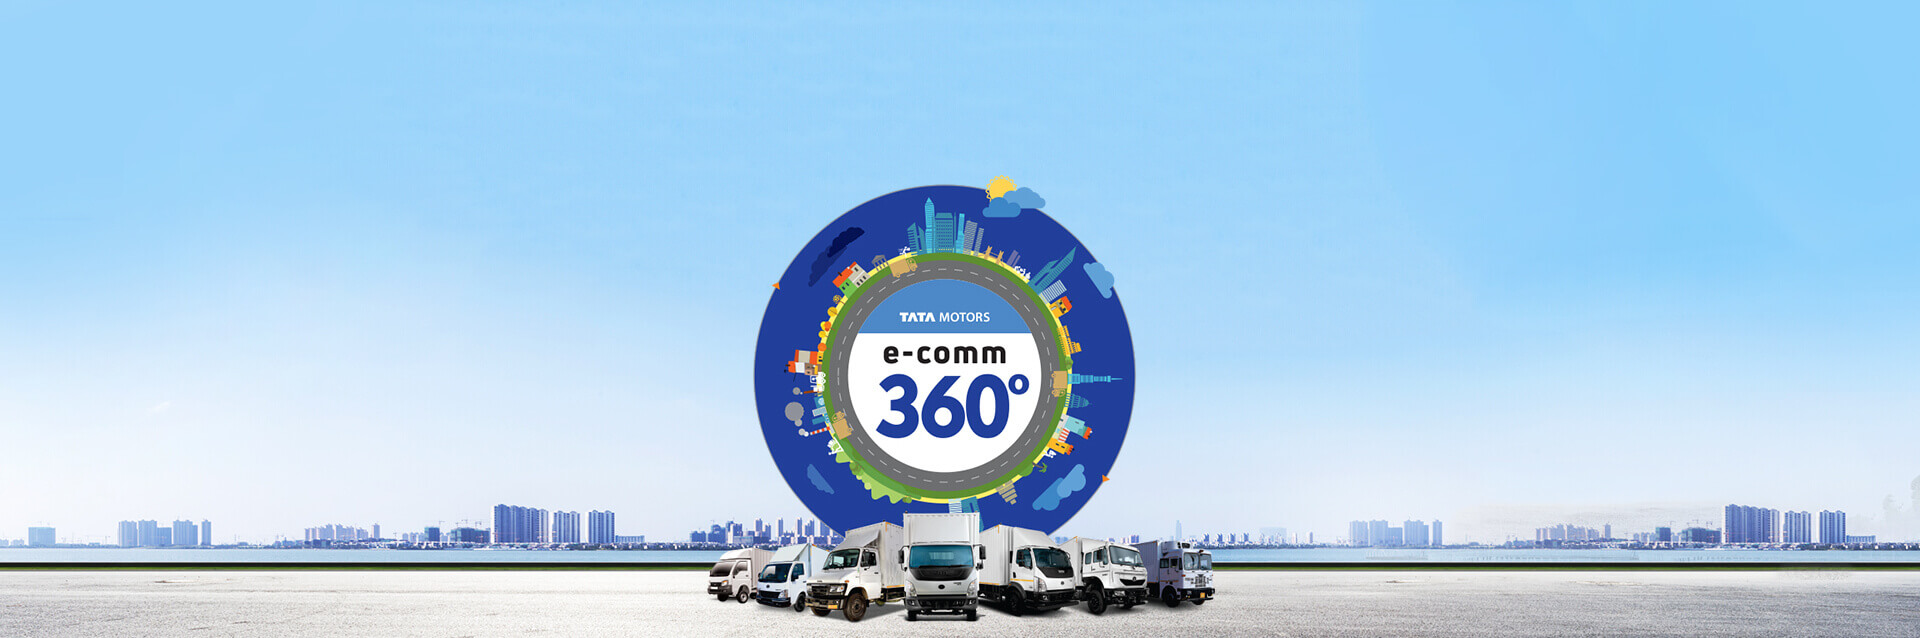 Tata Trucks Ecommerce mobile Banner